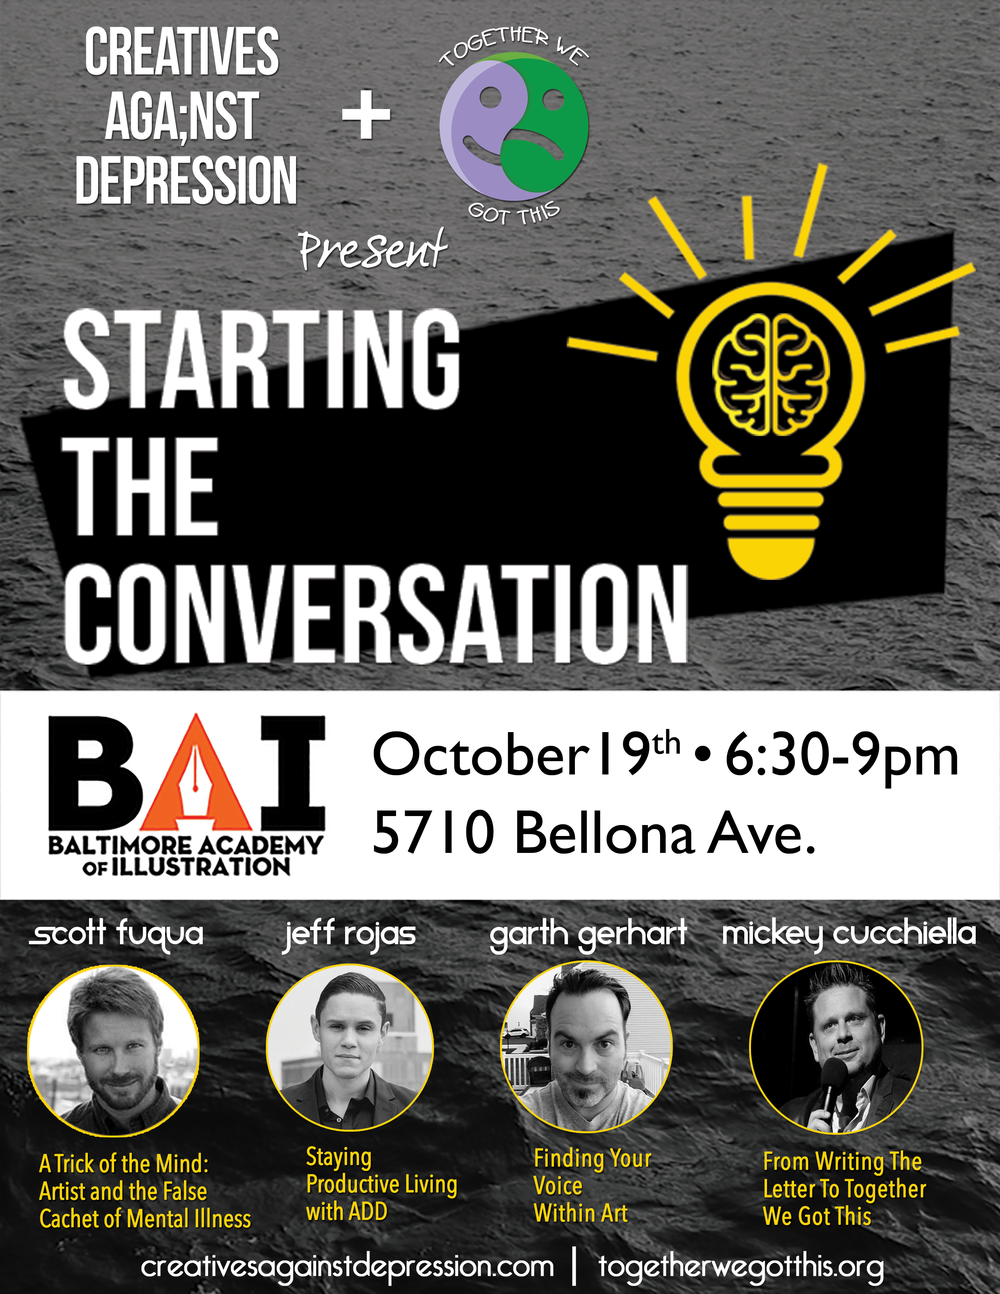 Friday, October 21st we'll be at the Towson University TUNE Building with speakers, Scott Fuqua, Garth Gerhart, + Mickey Cucchiella.